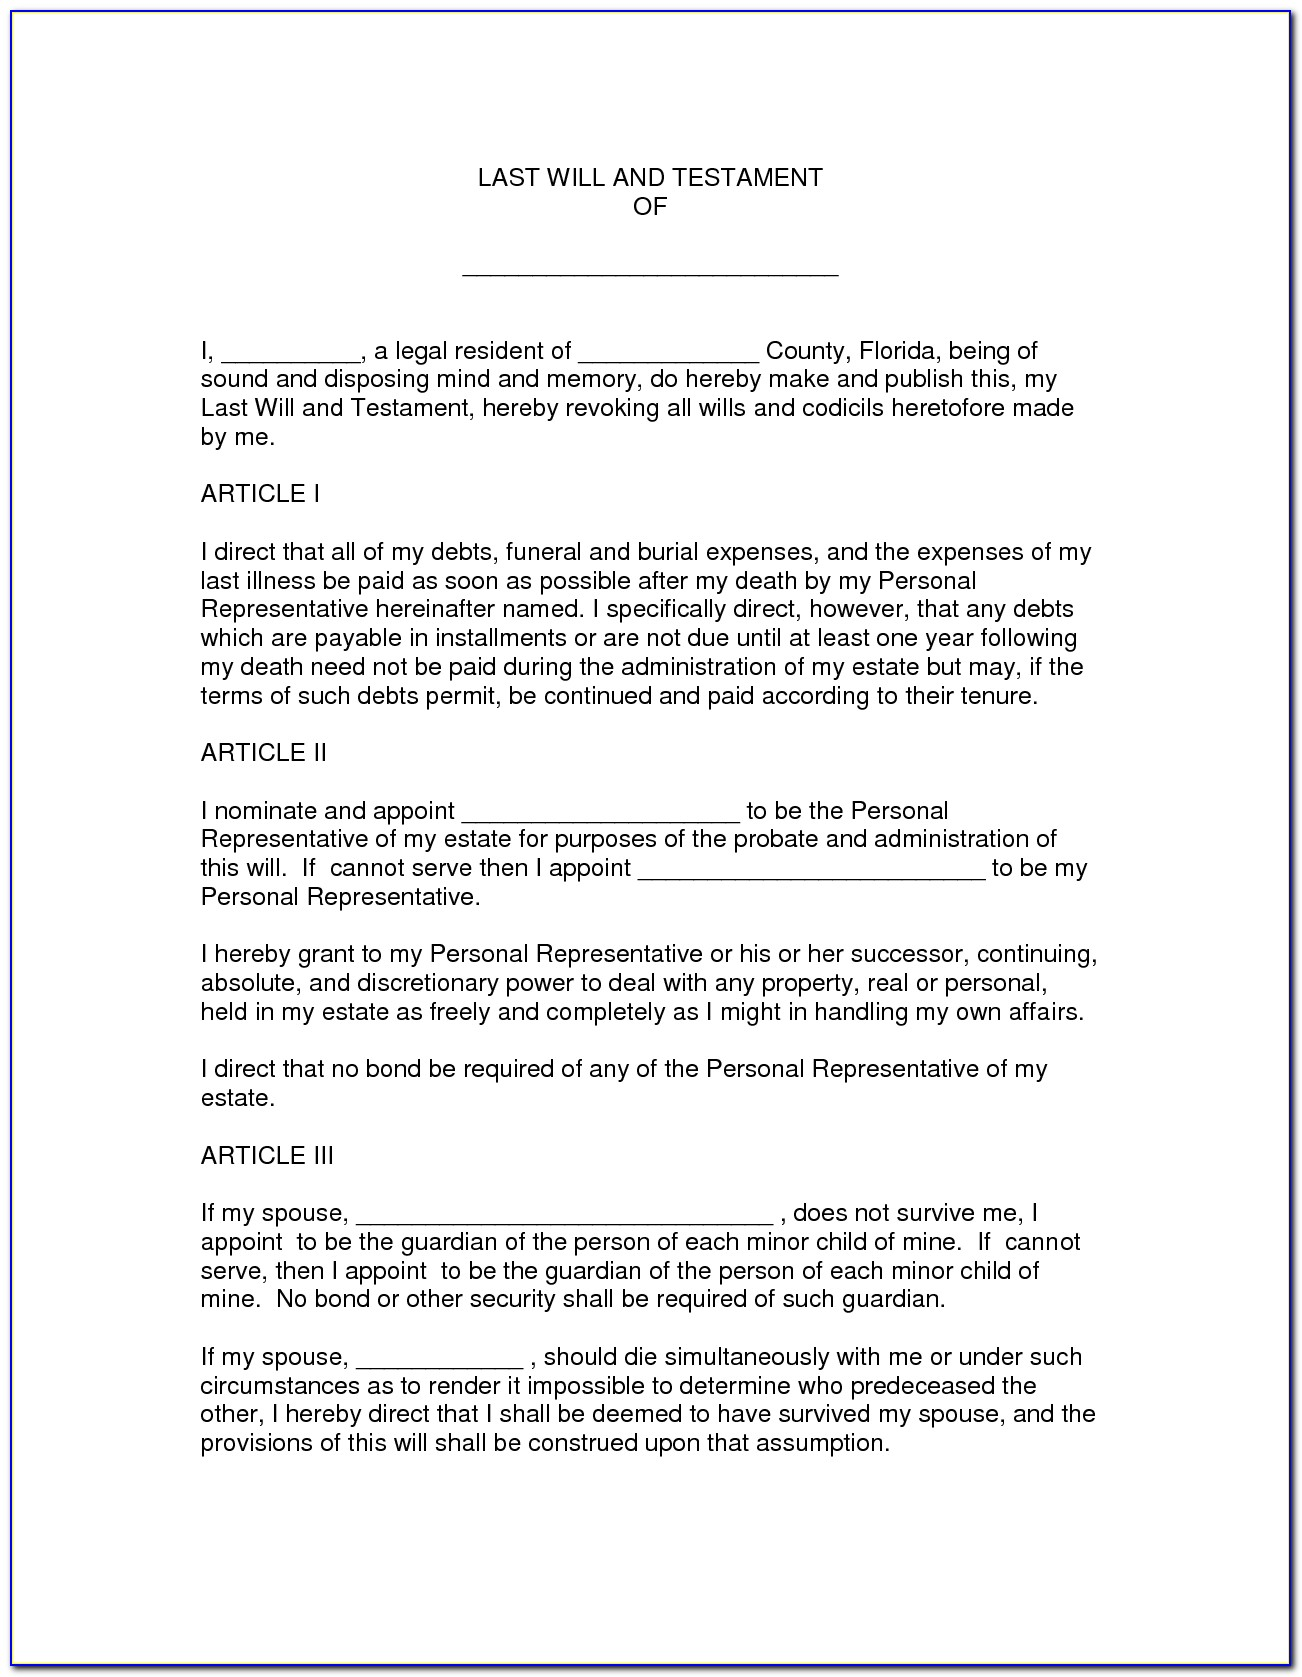 25 Images Of Florida Last Will Document Template | Crazybiker Pertaining To Last Will And Testament Template Florida